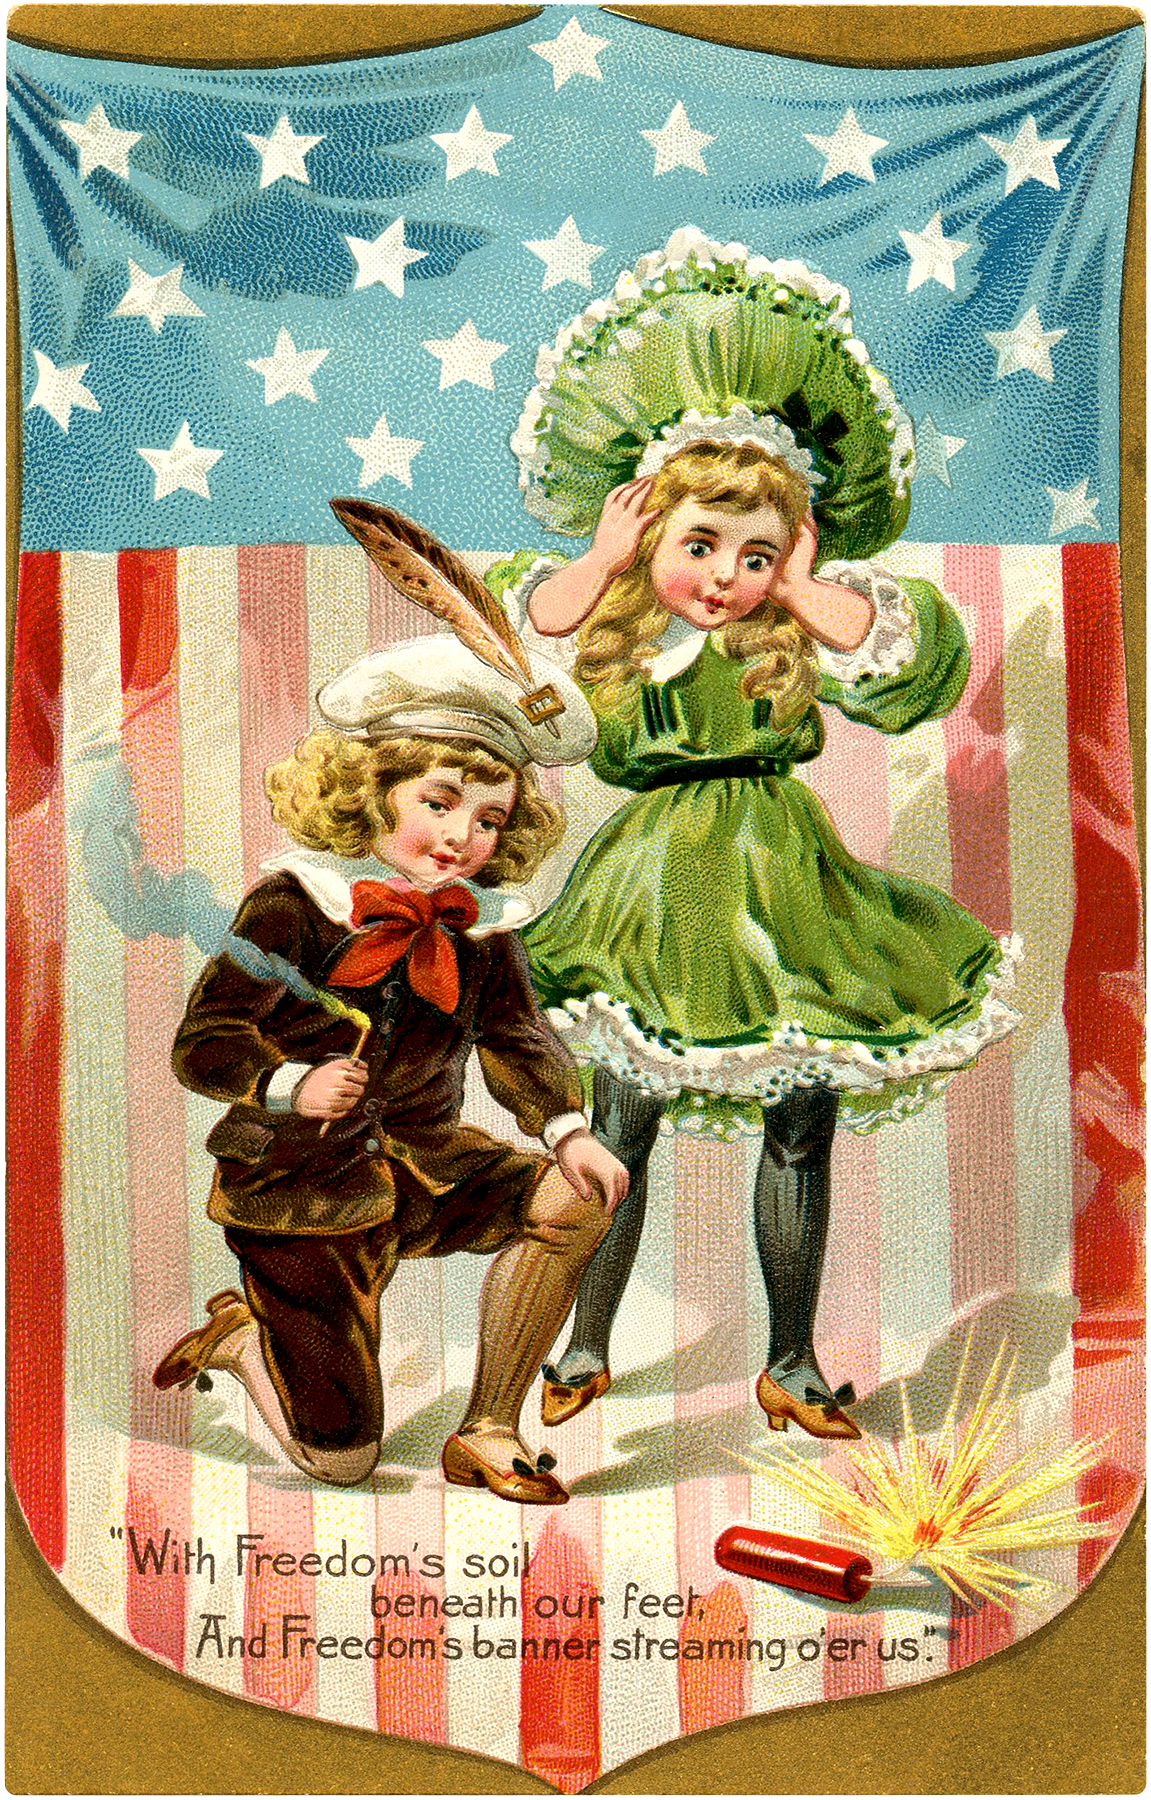 Vintage Firecracker Kids Image 4th Of July The